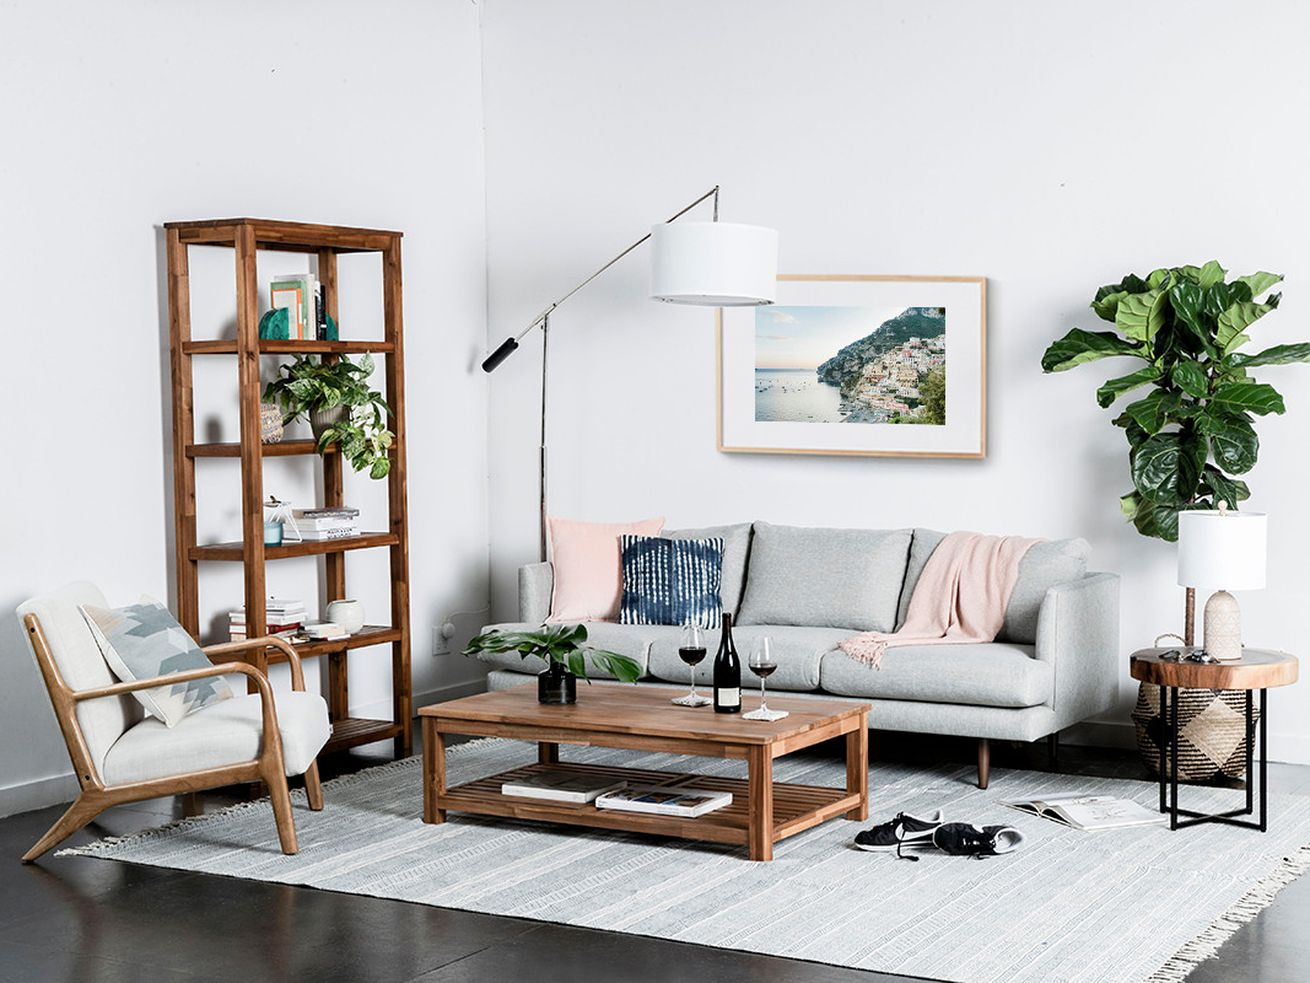 Oliver Space is the latest furniture rental startup for outfitting your apartment in a flash